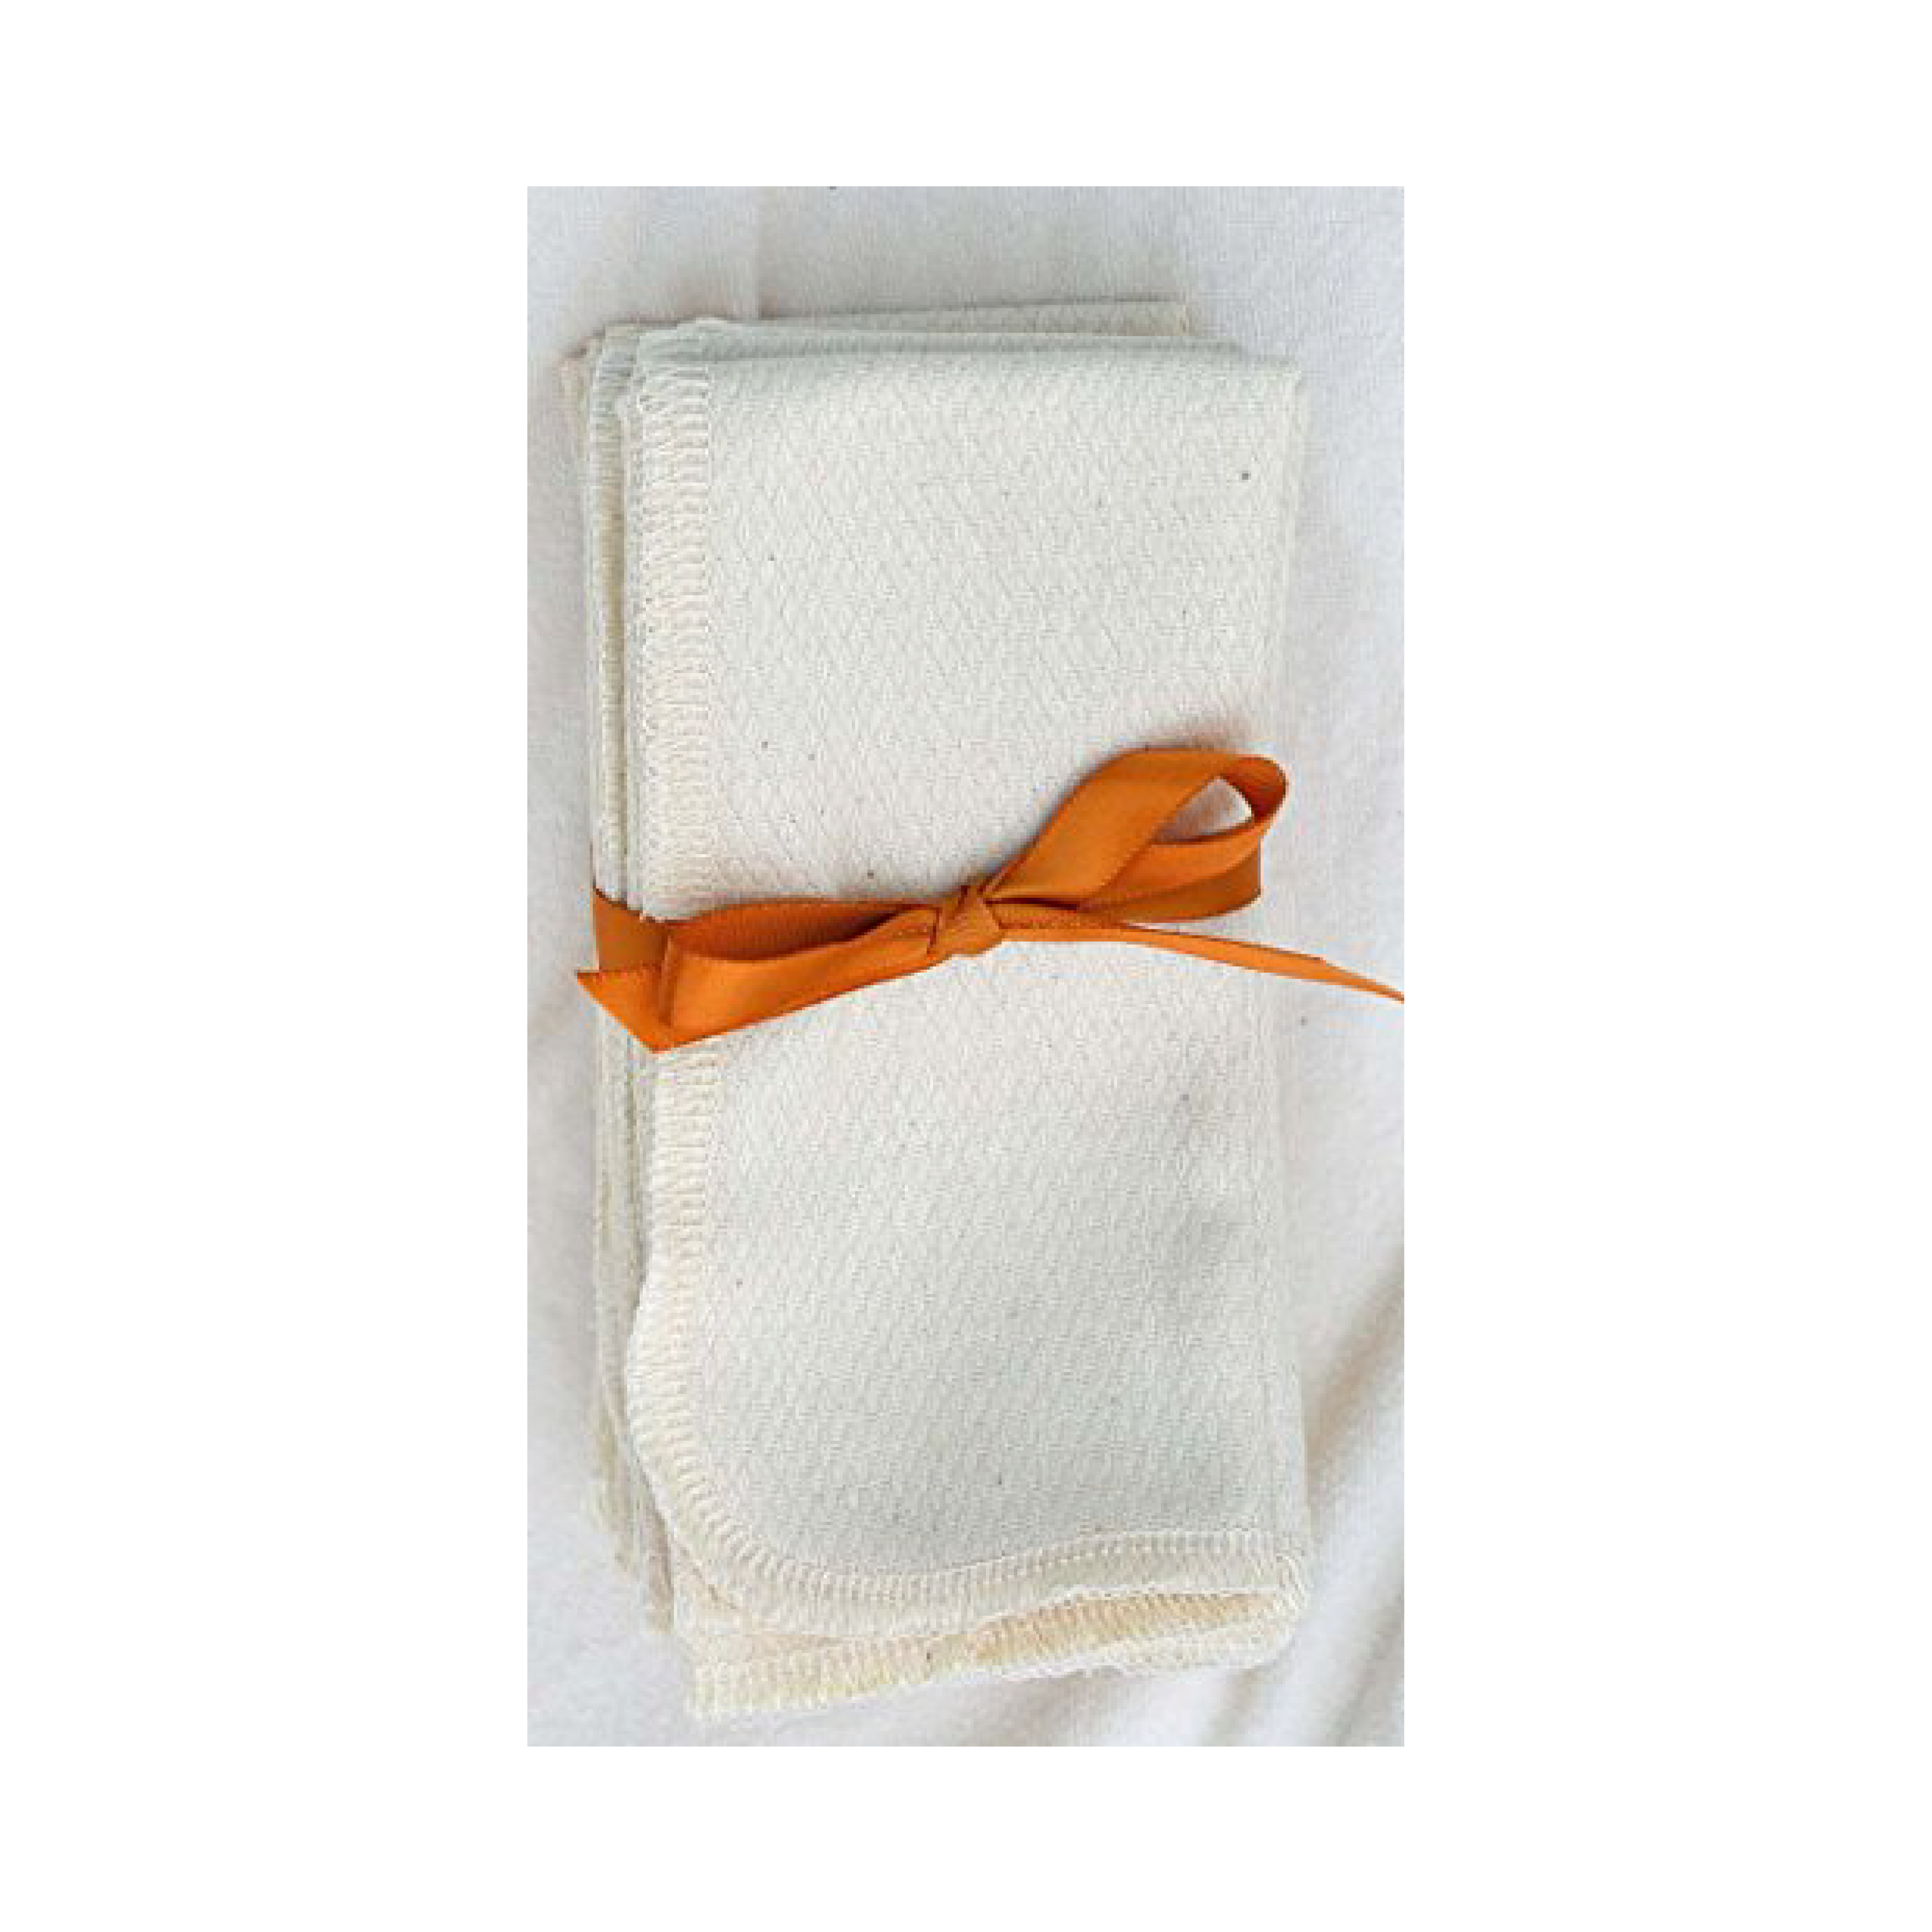 I couldn't find the exact unpaper towels that I have, but if I had to get them again, I'd get these. Use them just like you would paper towels, only instead of throwing them out, put them in the wash and reuse them instead!